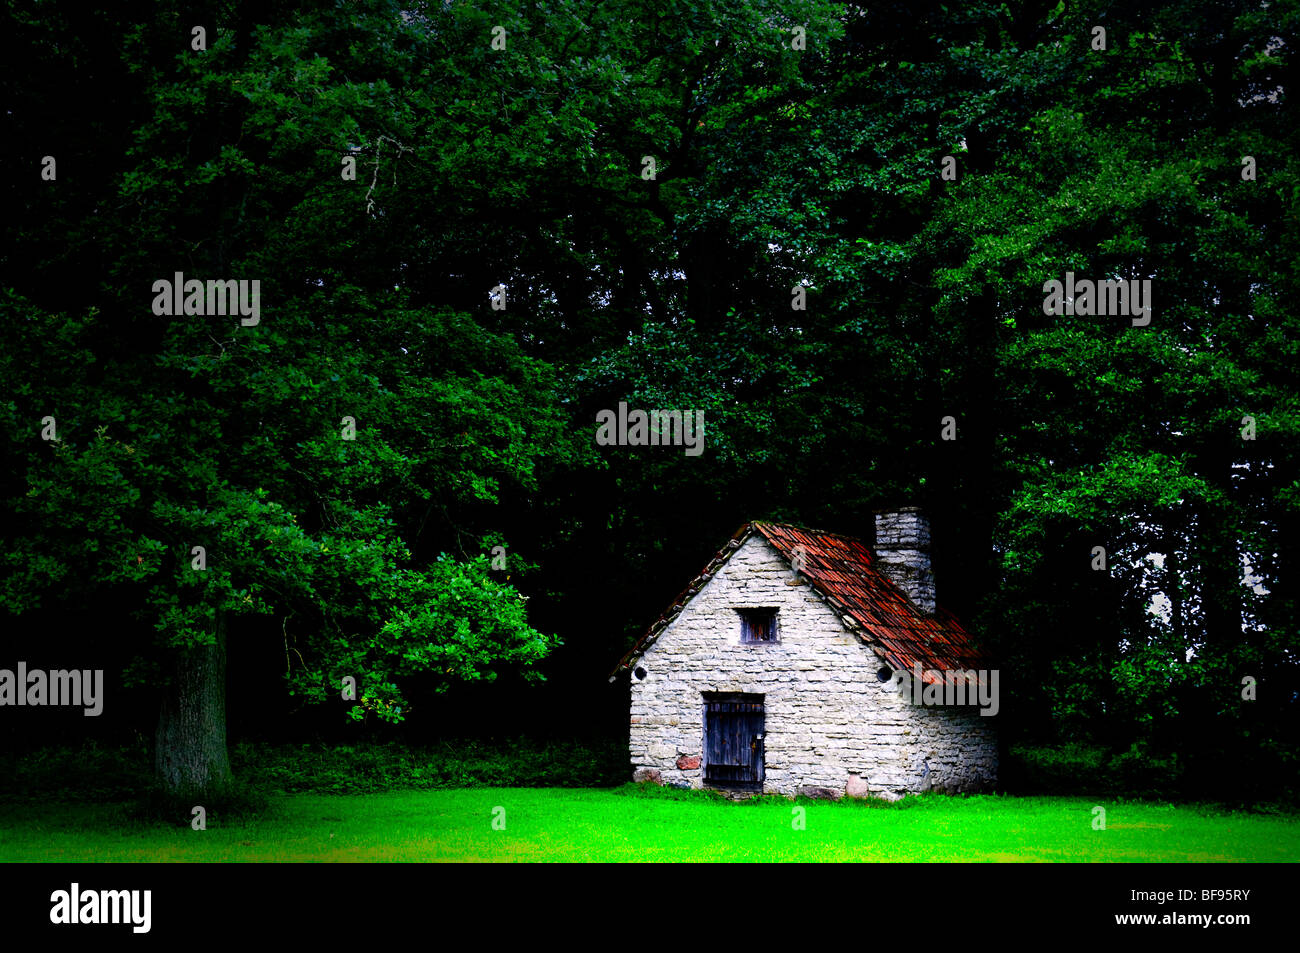 A cottage in the woods - Stock Image